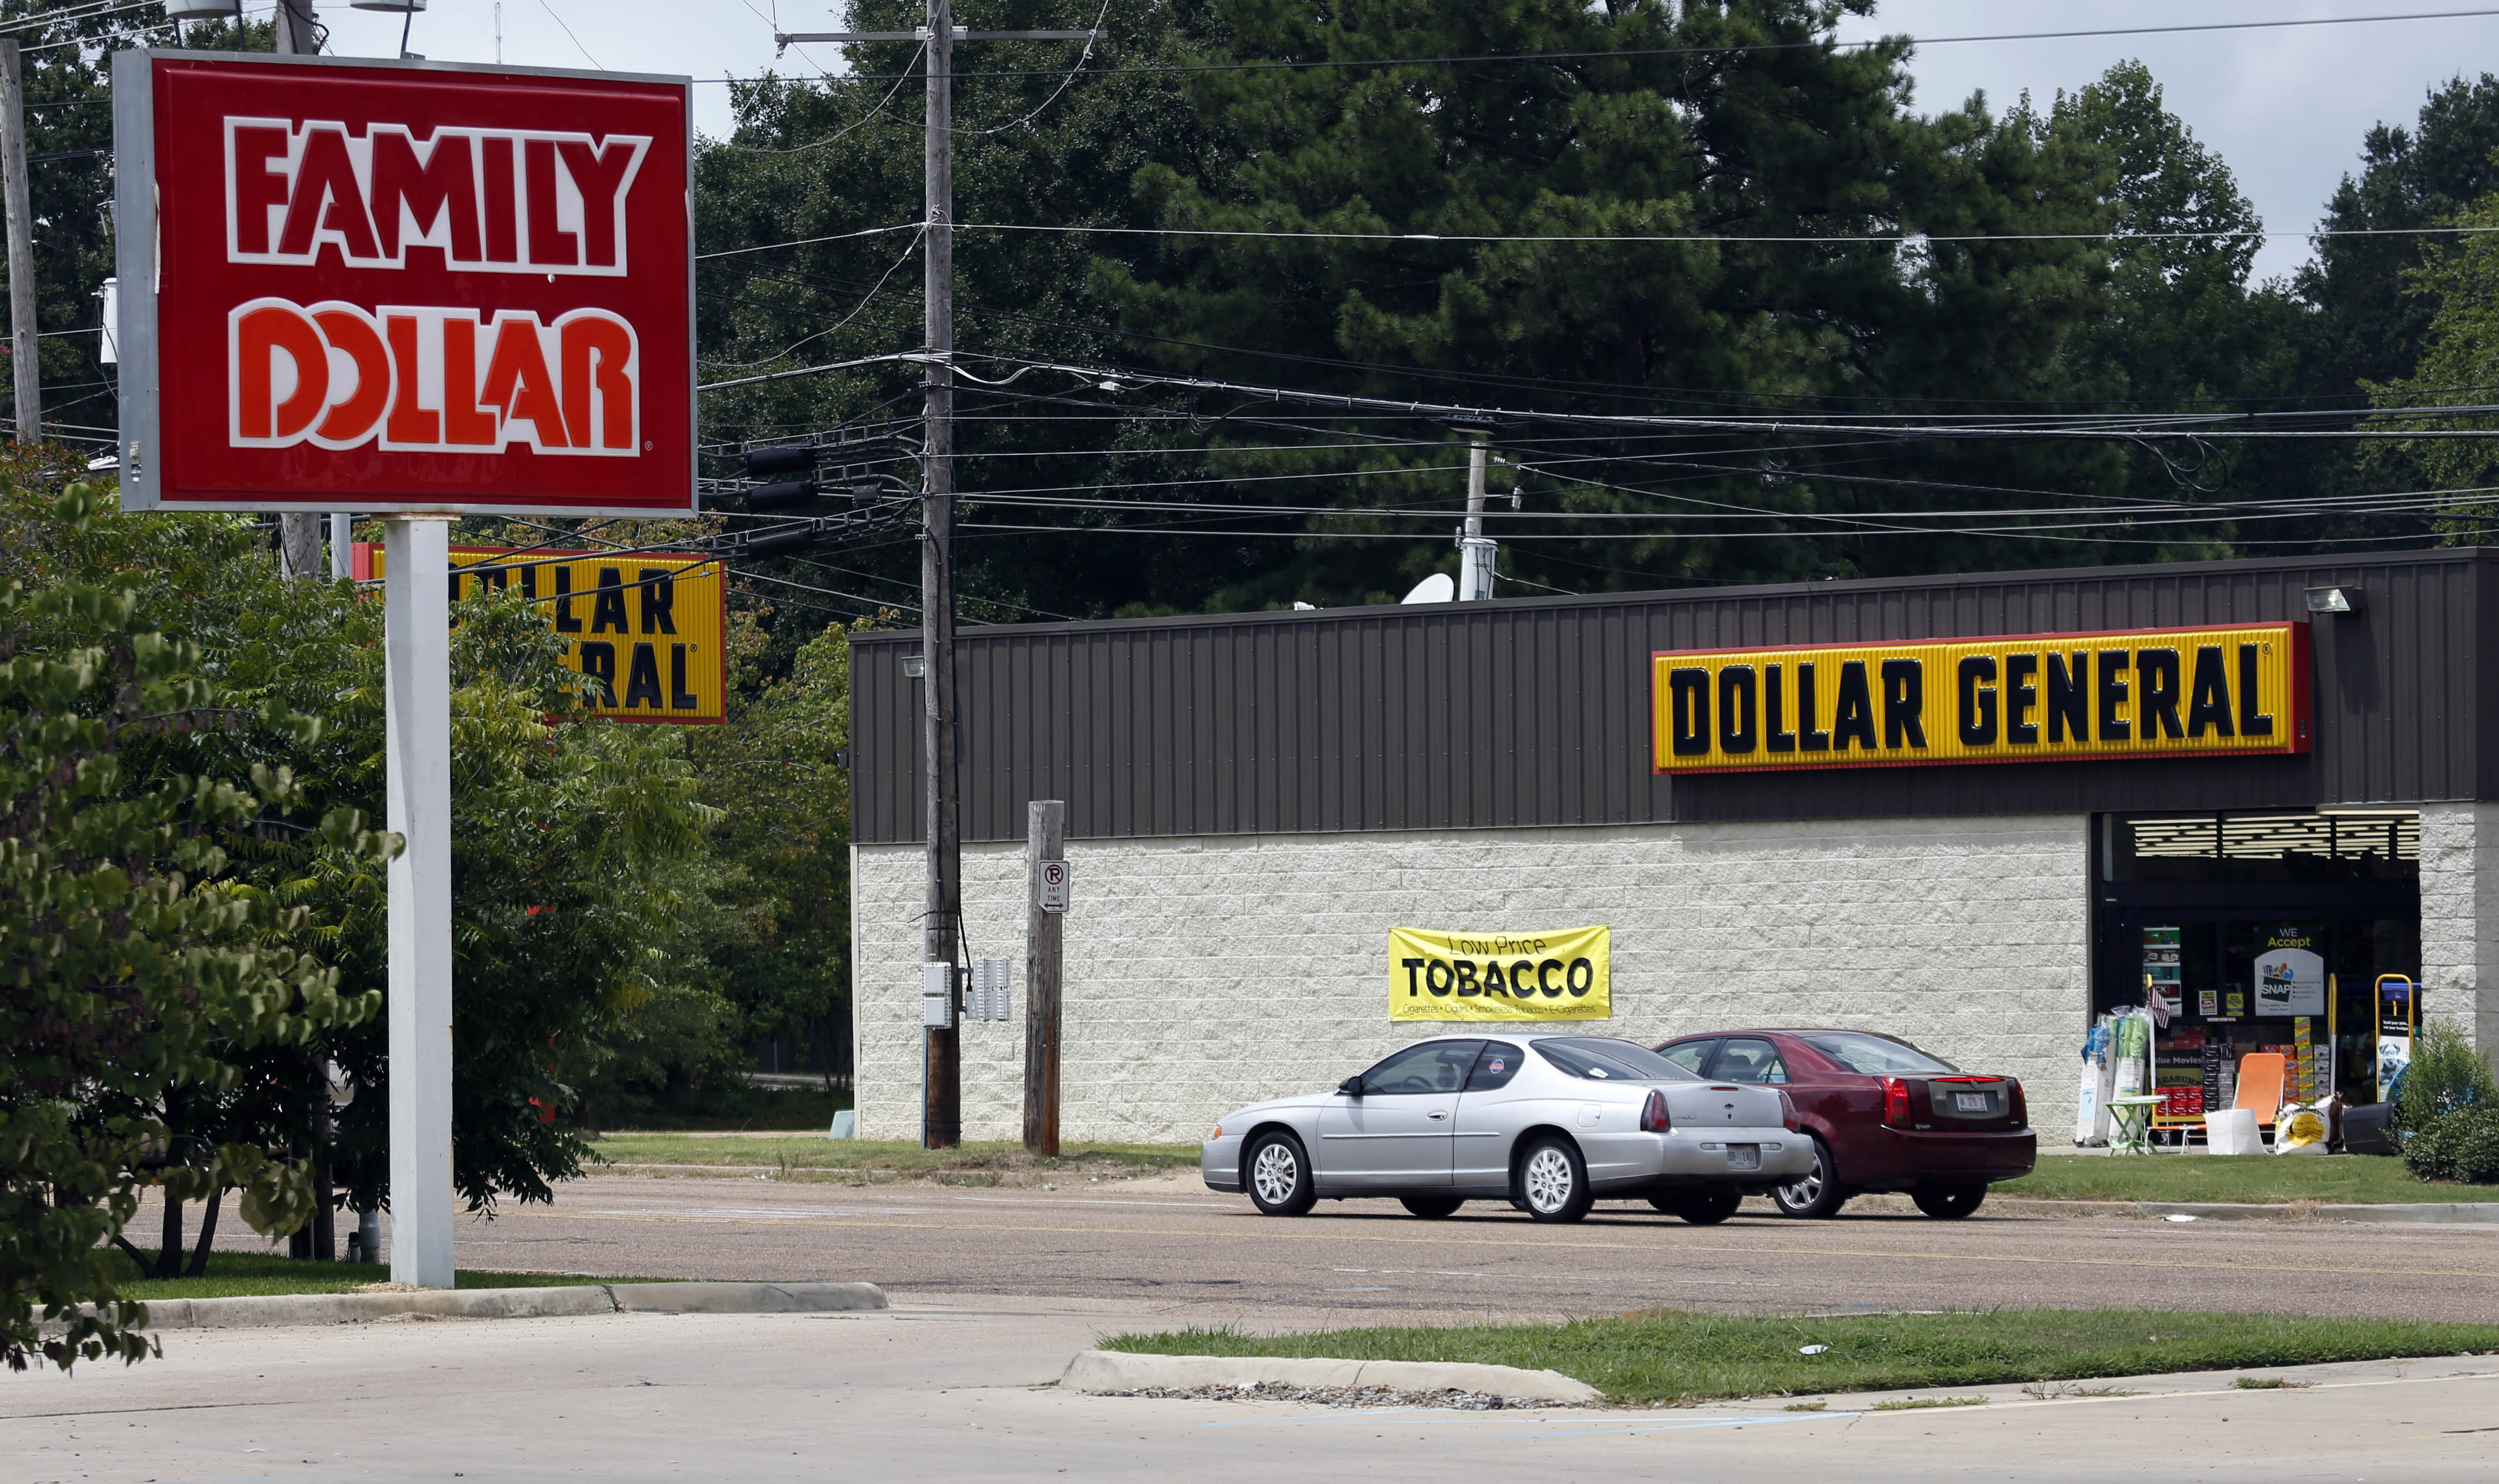 Dollar general business strategy